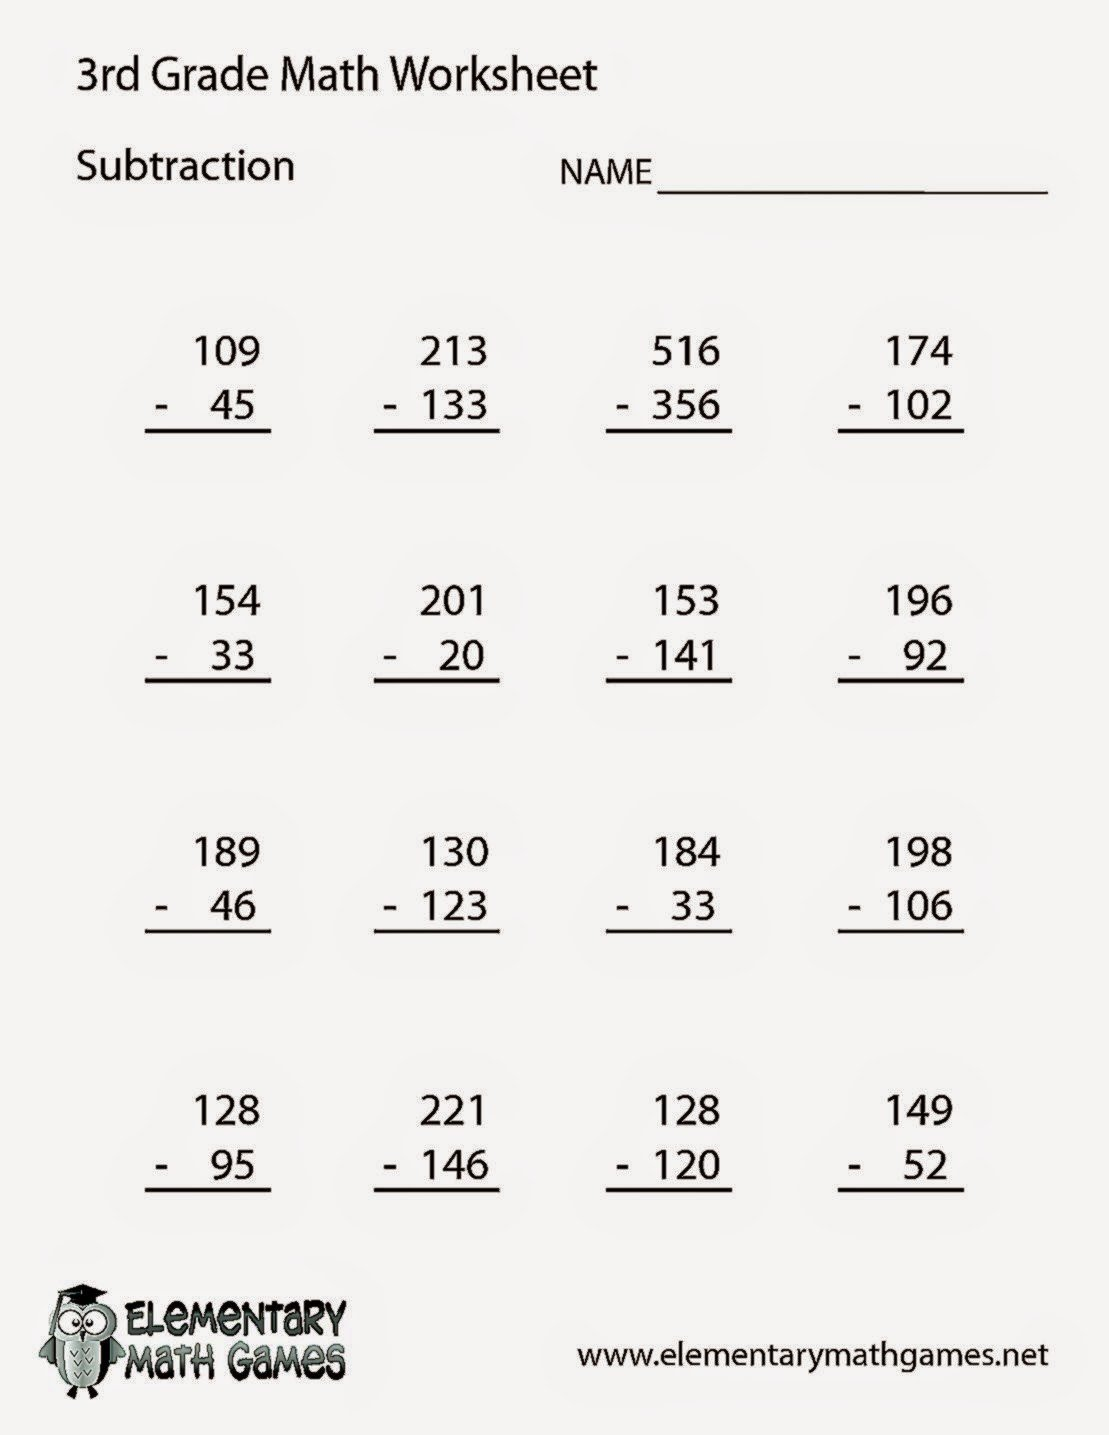 Compatible Numbers 3rd Grade Worksheets 7th Grade Math Estimation Worksheetsml Math Estimation